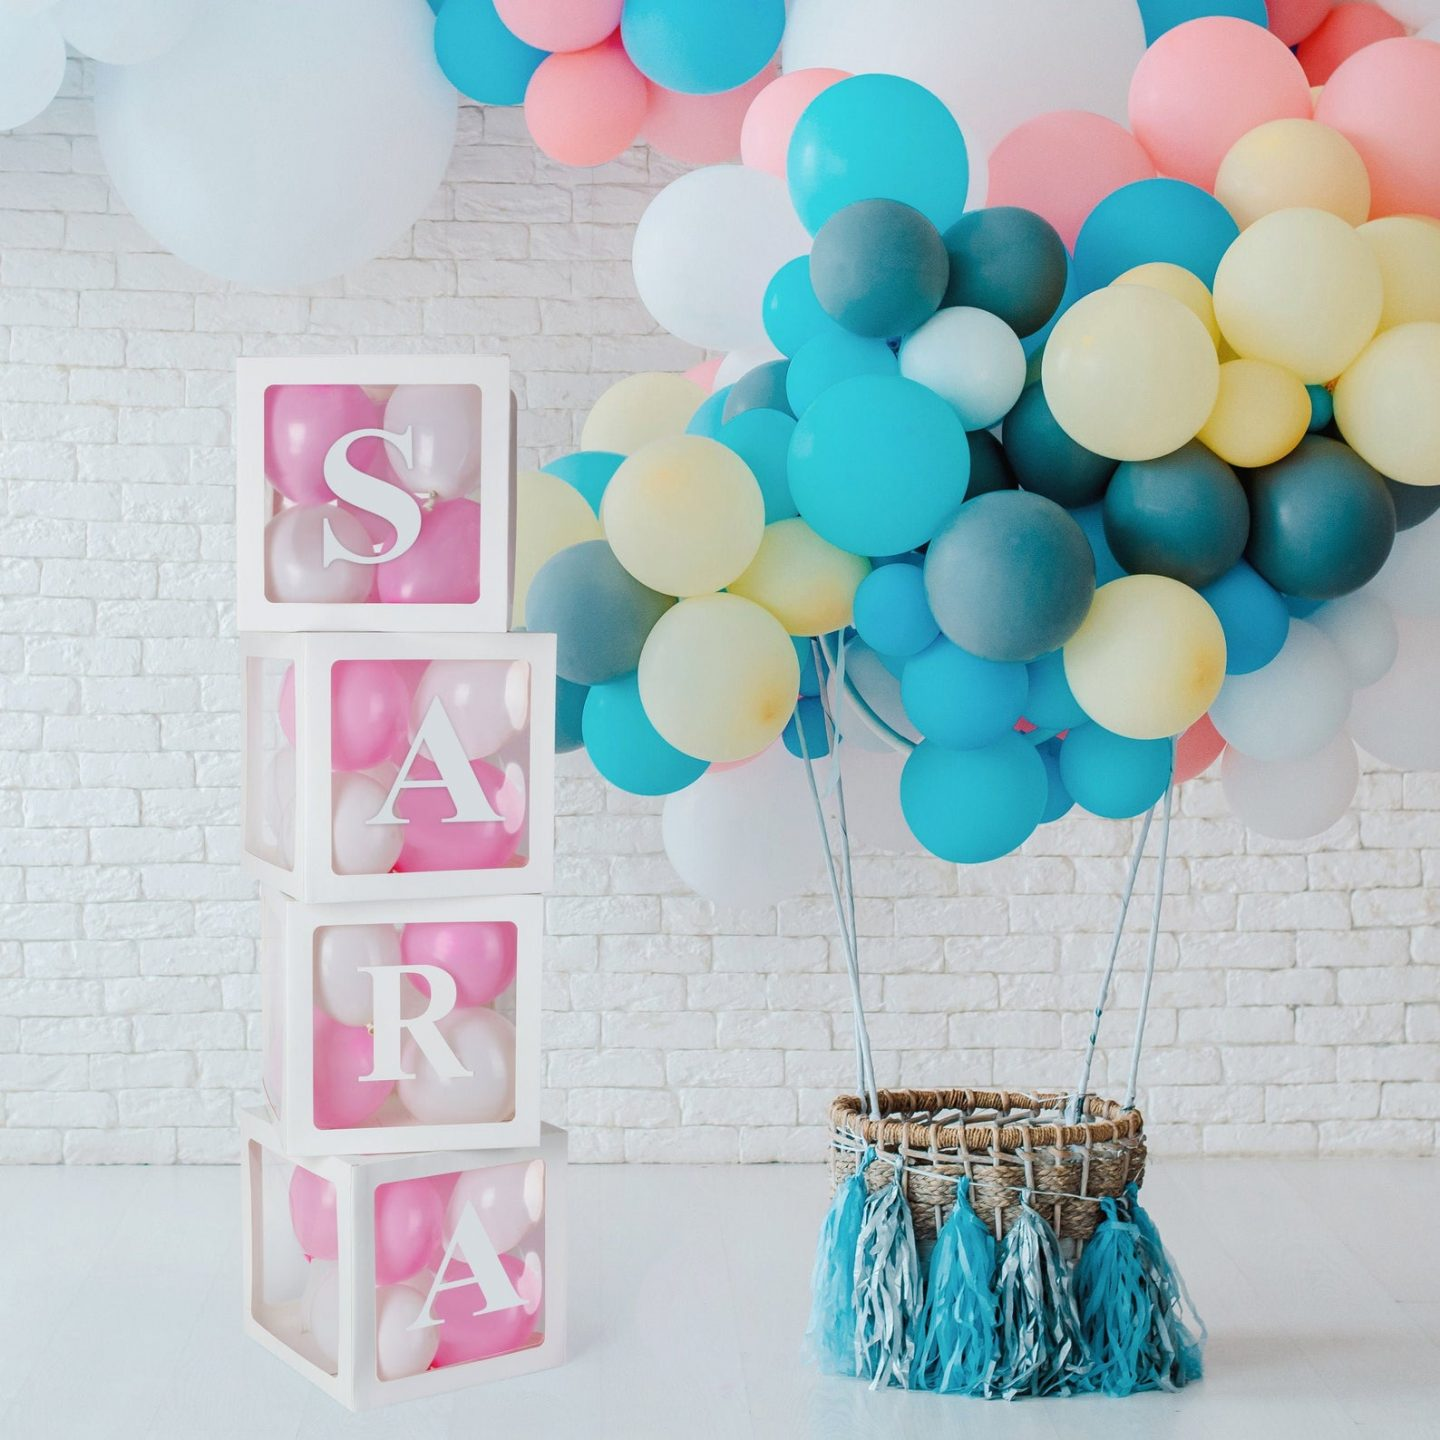 White transparent boxes for baby shower with balloons